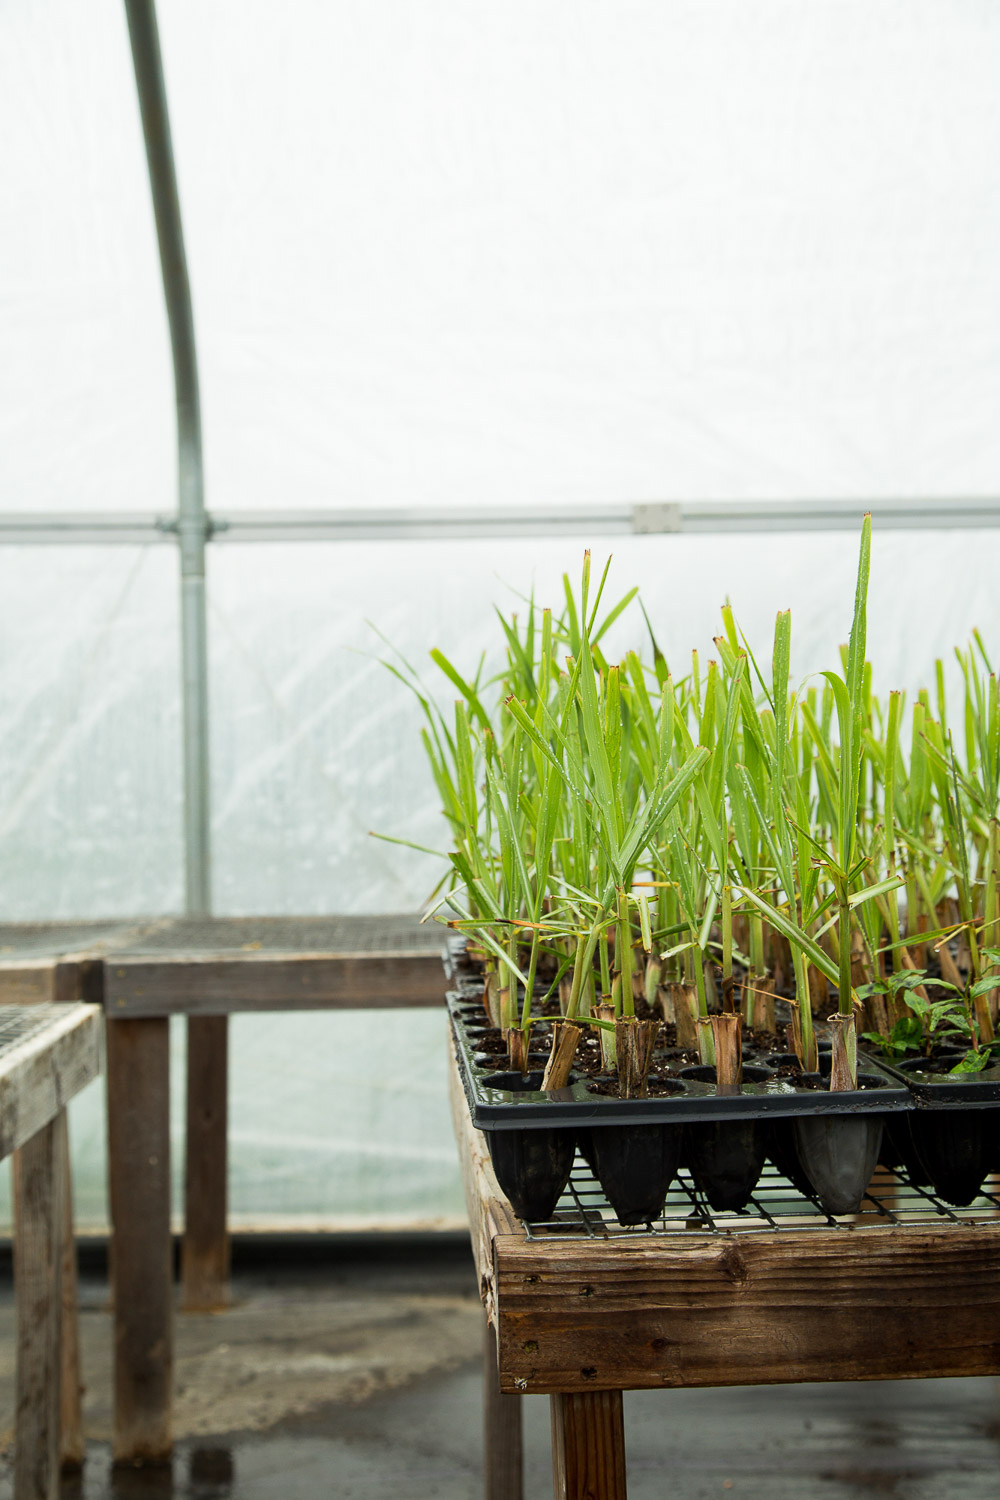 lemongrass in a greenhouse